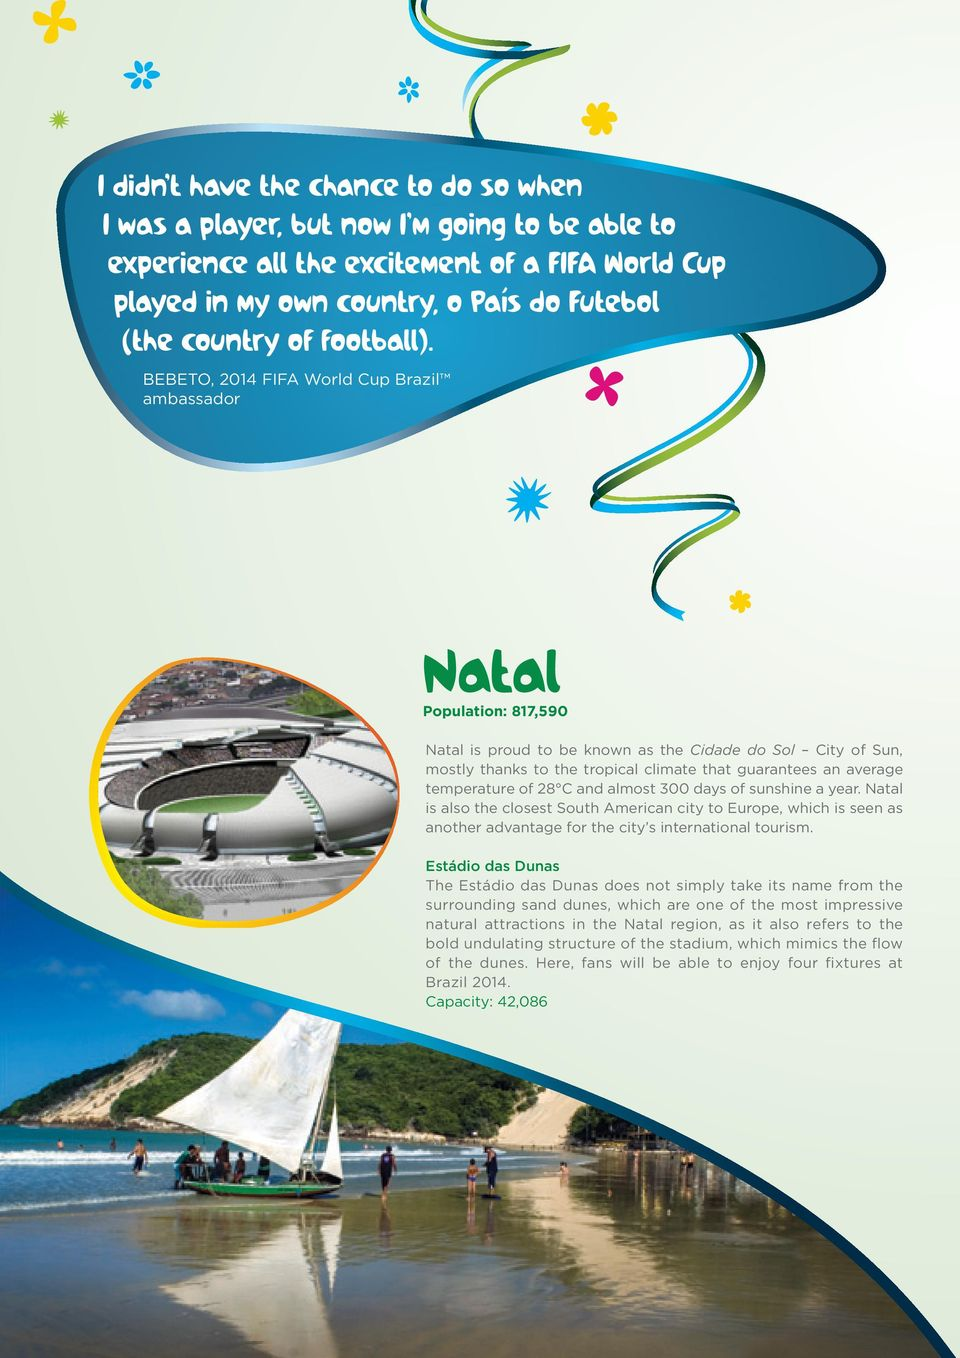 BEBETO, 2014 FIFA World Cup Brazil ambassador Natal Population 817,590 Natal is proud to be known as the Cidade do Sol City of Sun, mostly thanks to the tropical climate that guarantees an average